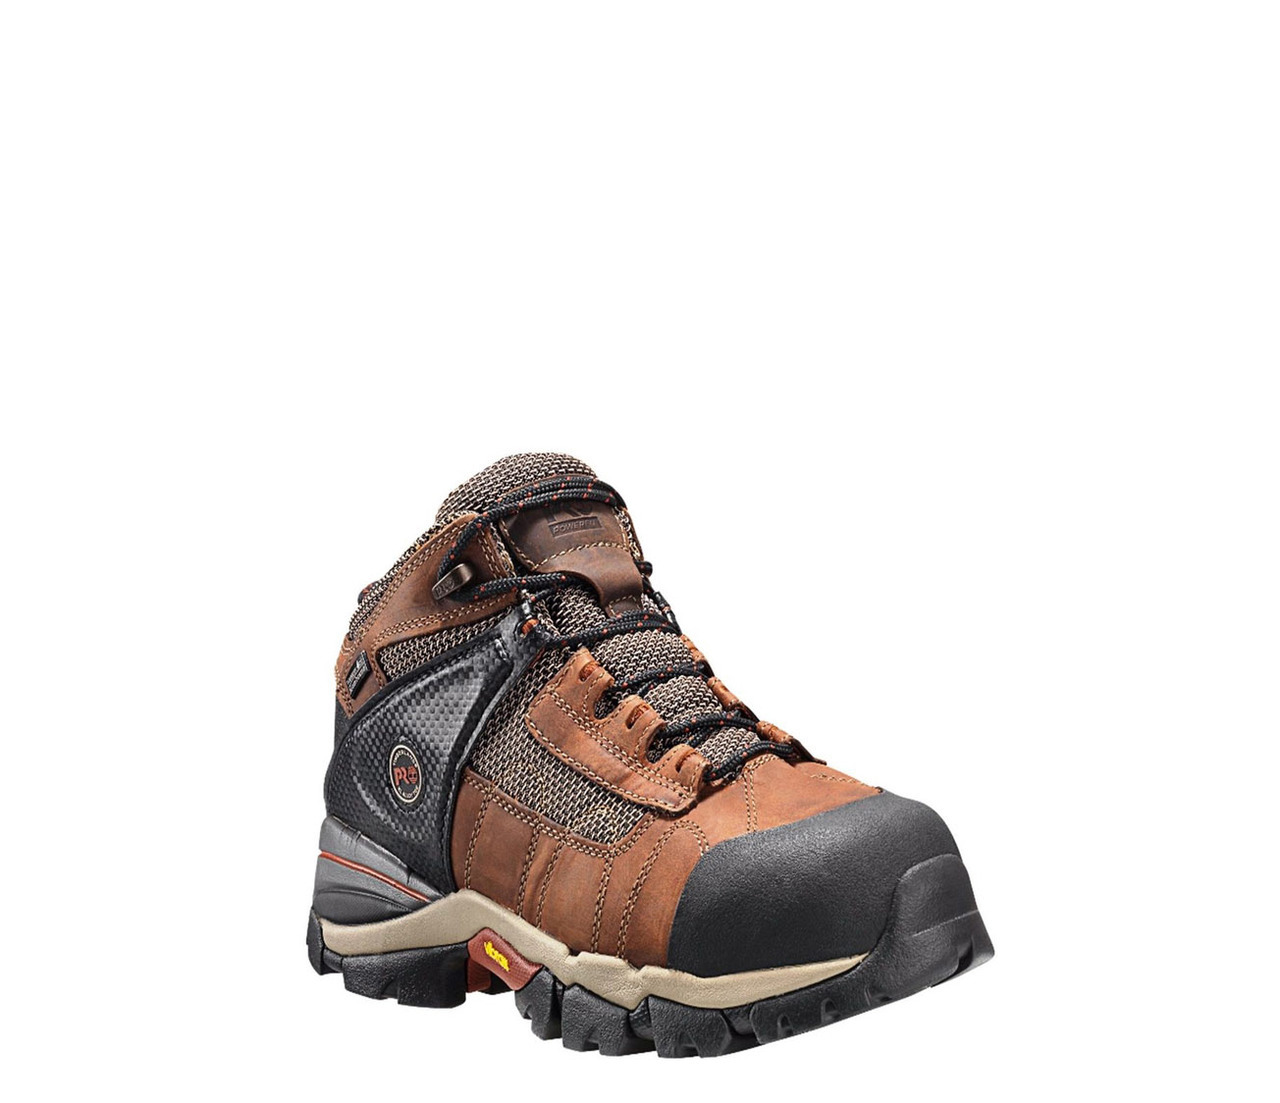 94471fe0e55 Timberland Pro Hyperion Mid Alloy Waterproof Work Boots